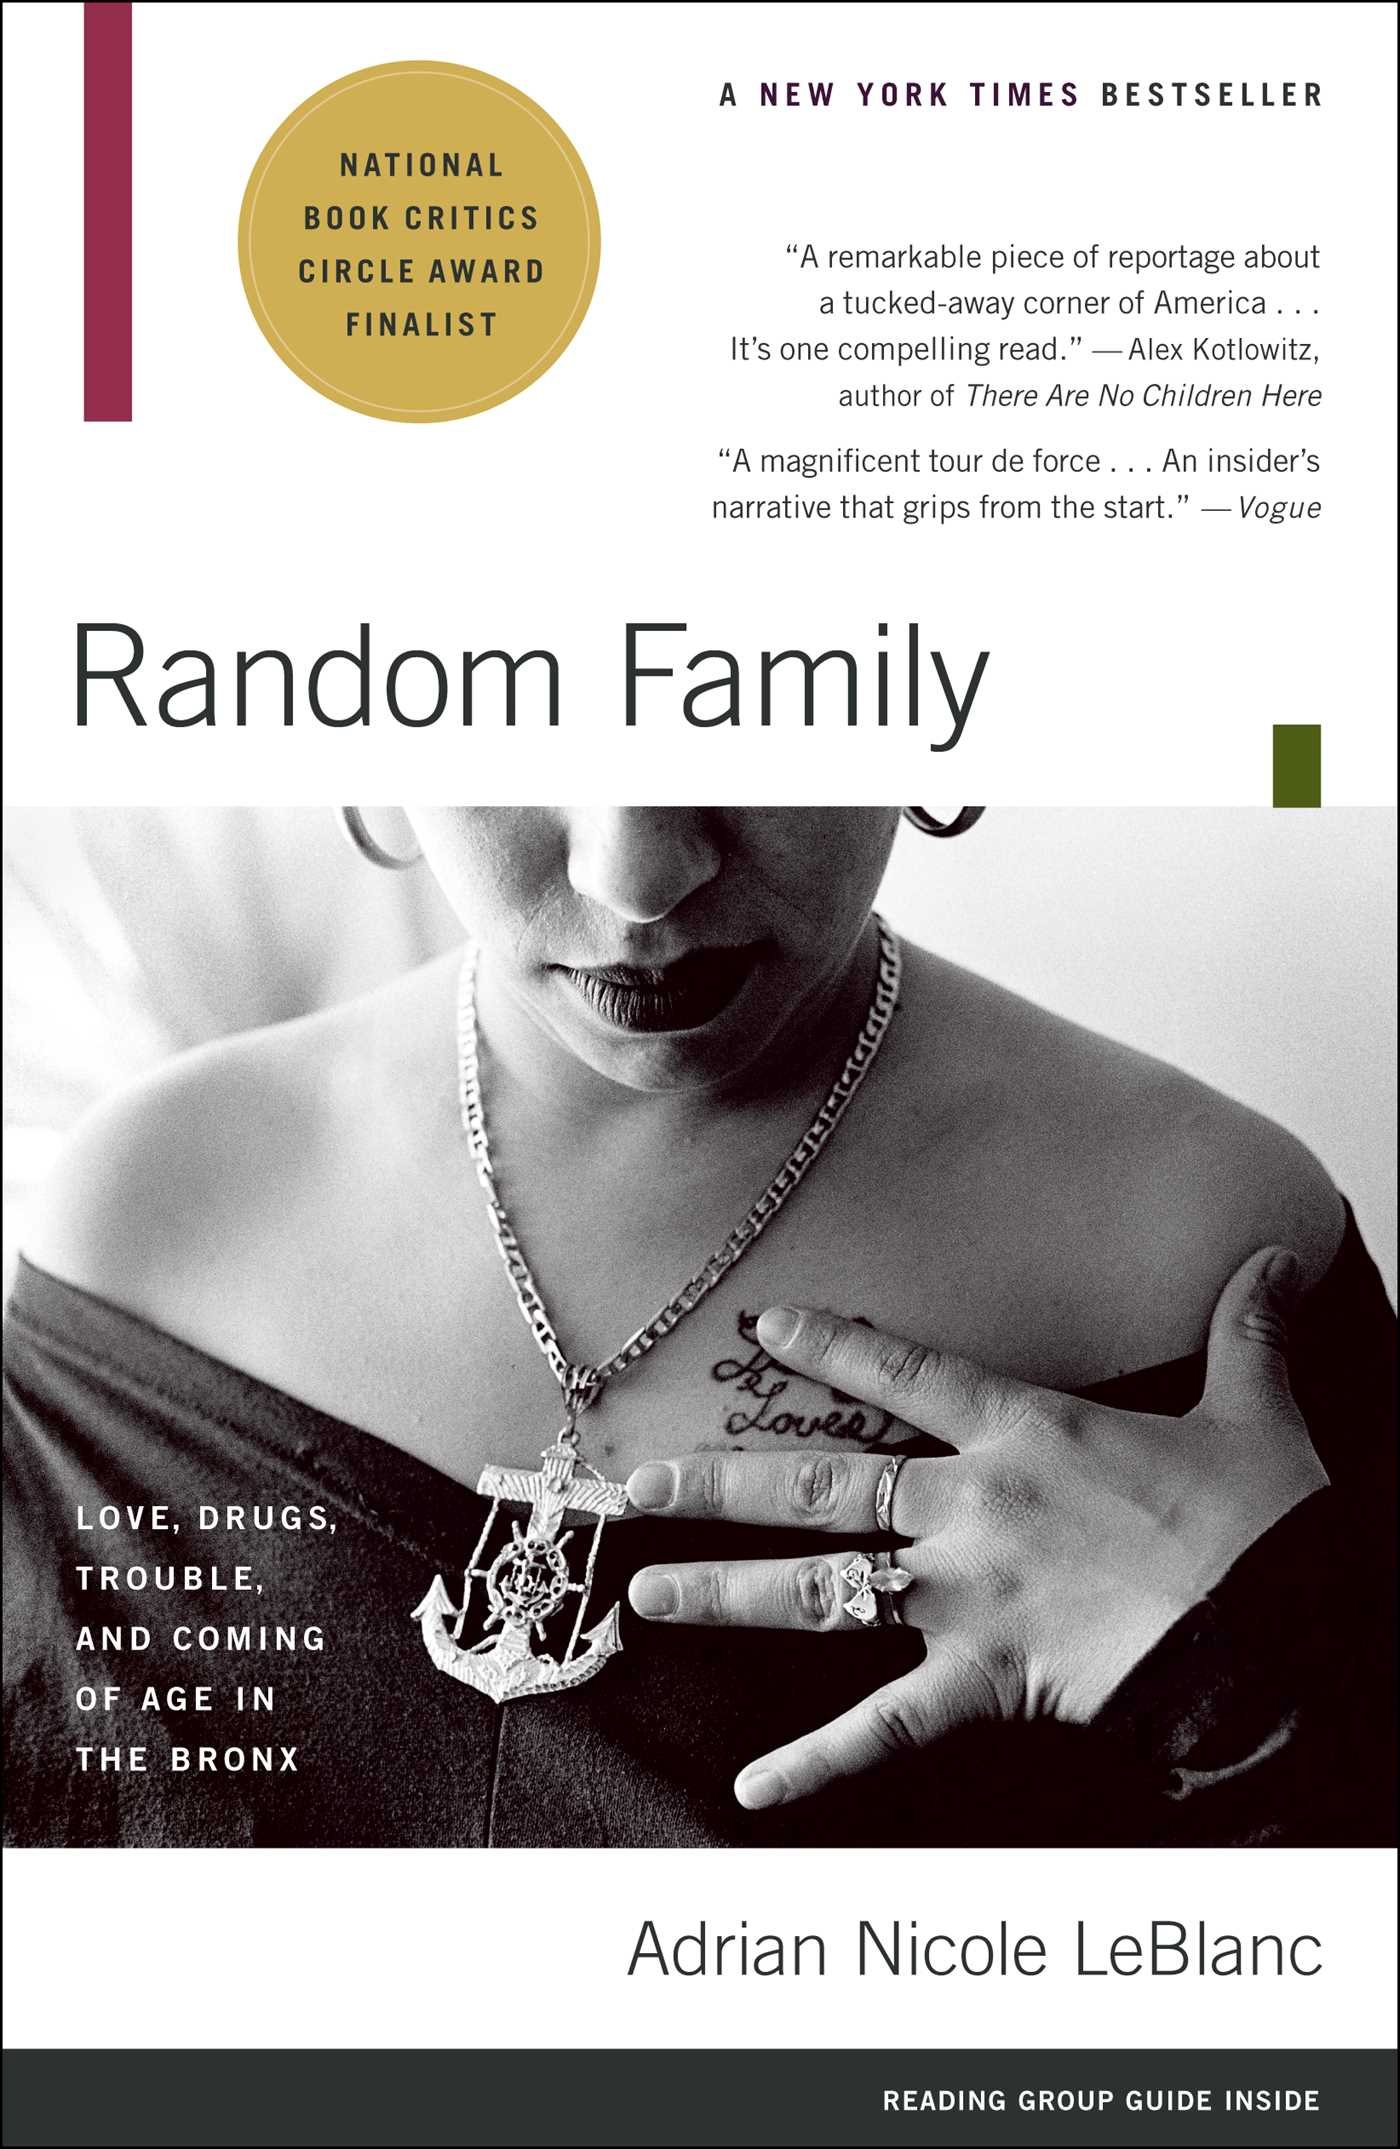 Random family love drugs trouble and coming of age in the bronx random family love drugs trouble and coming of age in the bronx adrian nicole leblanc 9780743254434 amazon books fandeluxe Images